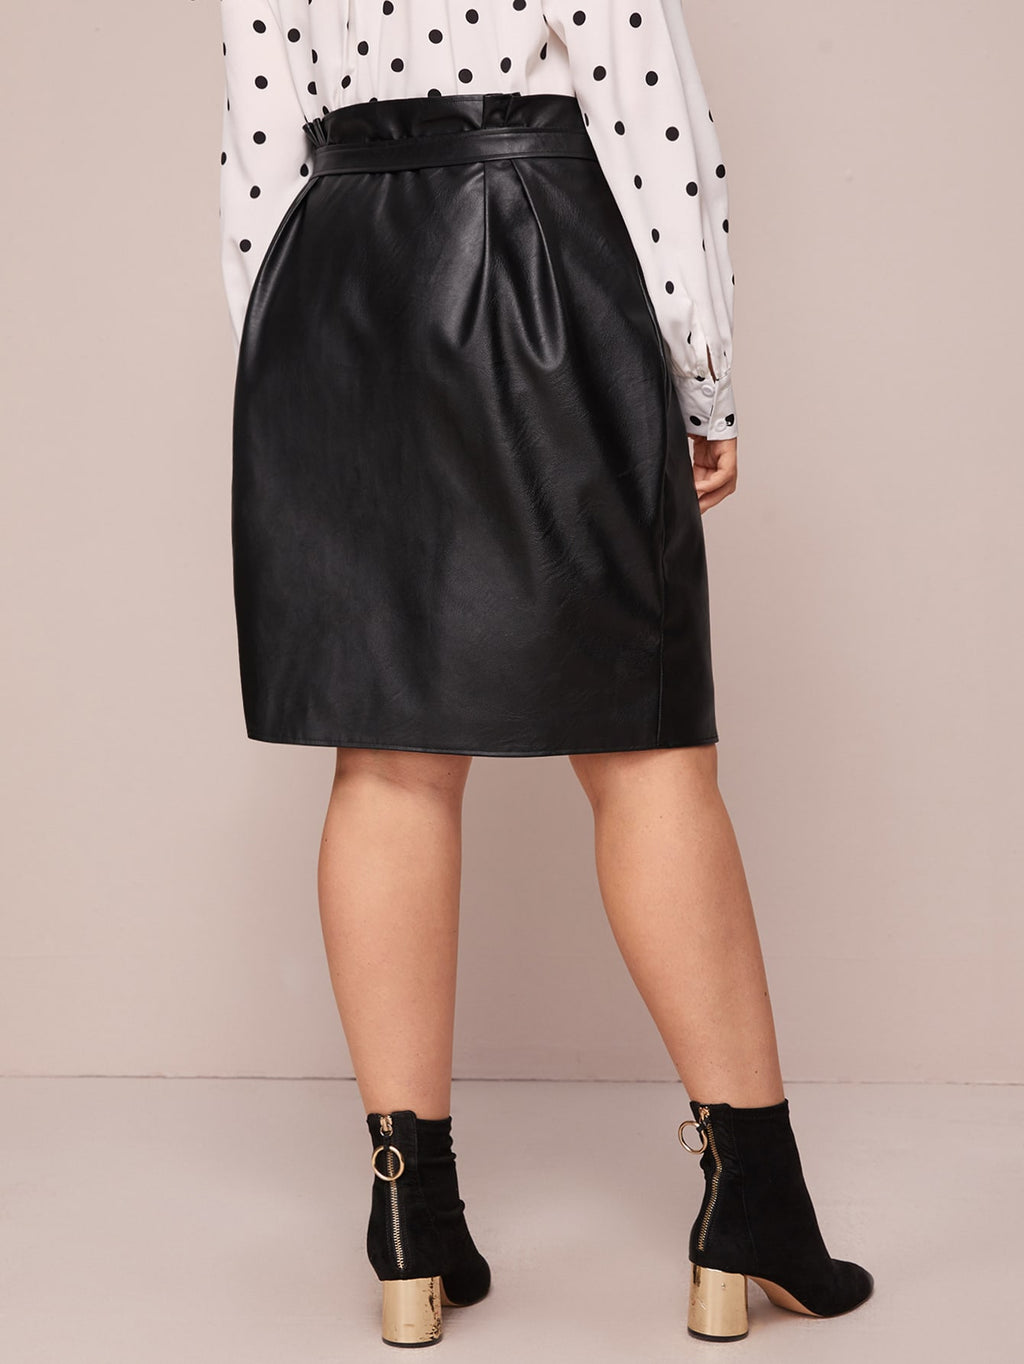 Plus Size Chic PU Leather Self Tie Straight Skirt